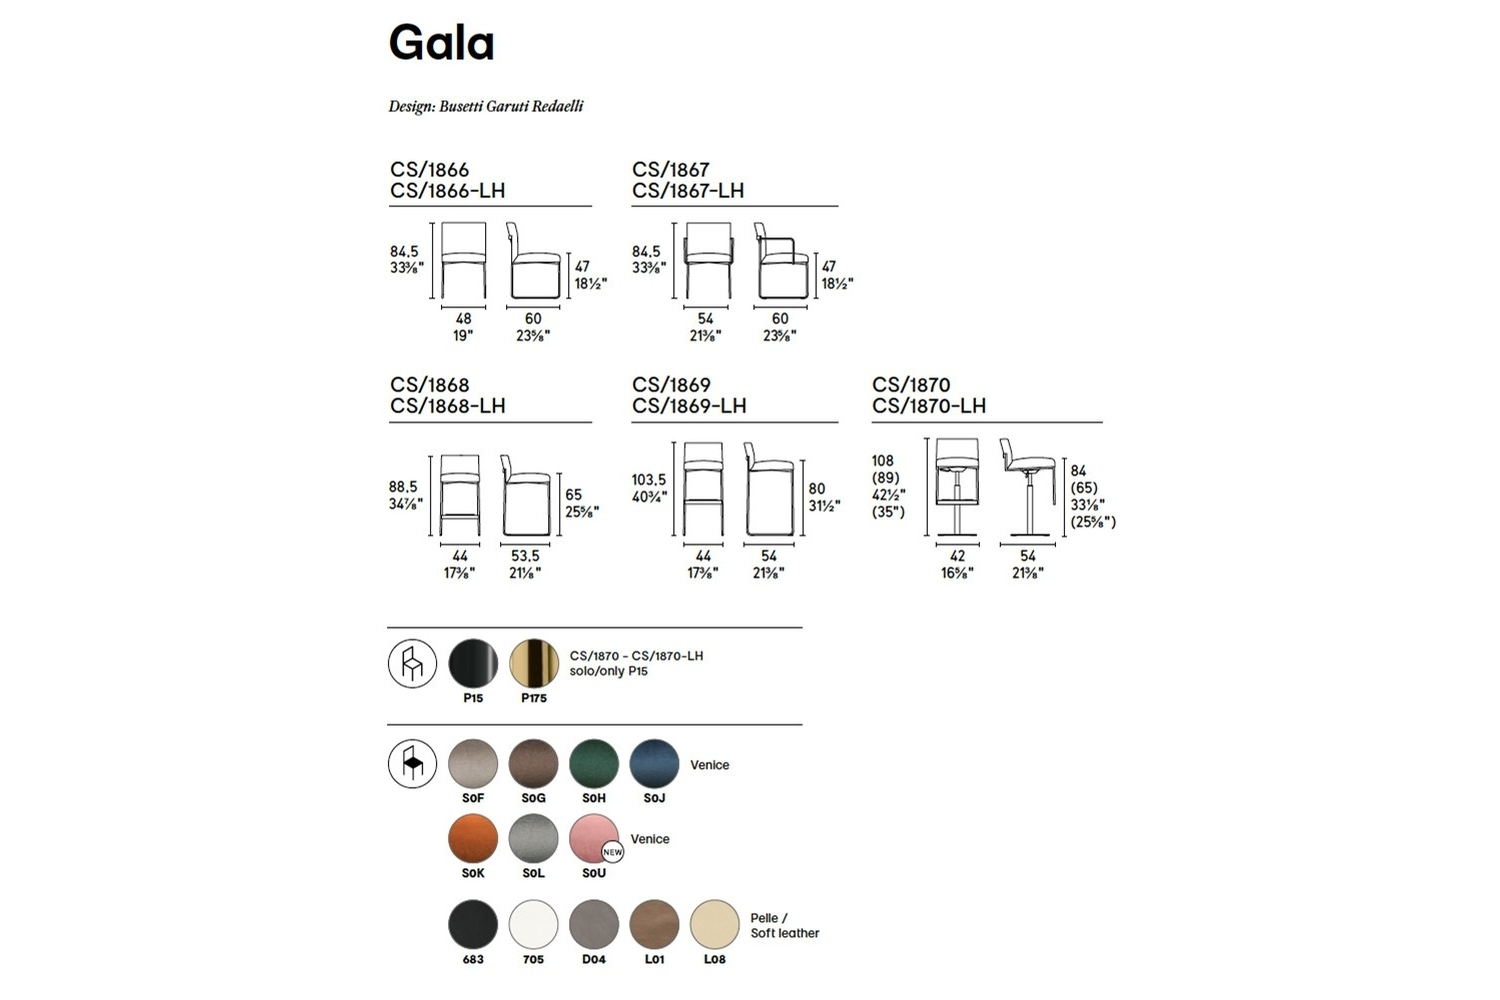 GALA CHAIRS Calligaris Schematics GALA_CHAIRS_Calligaris_Schematics.jpg 2018